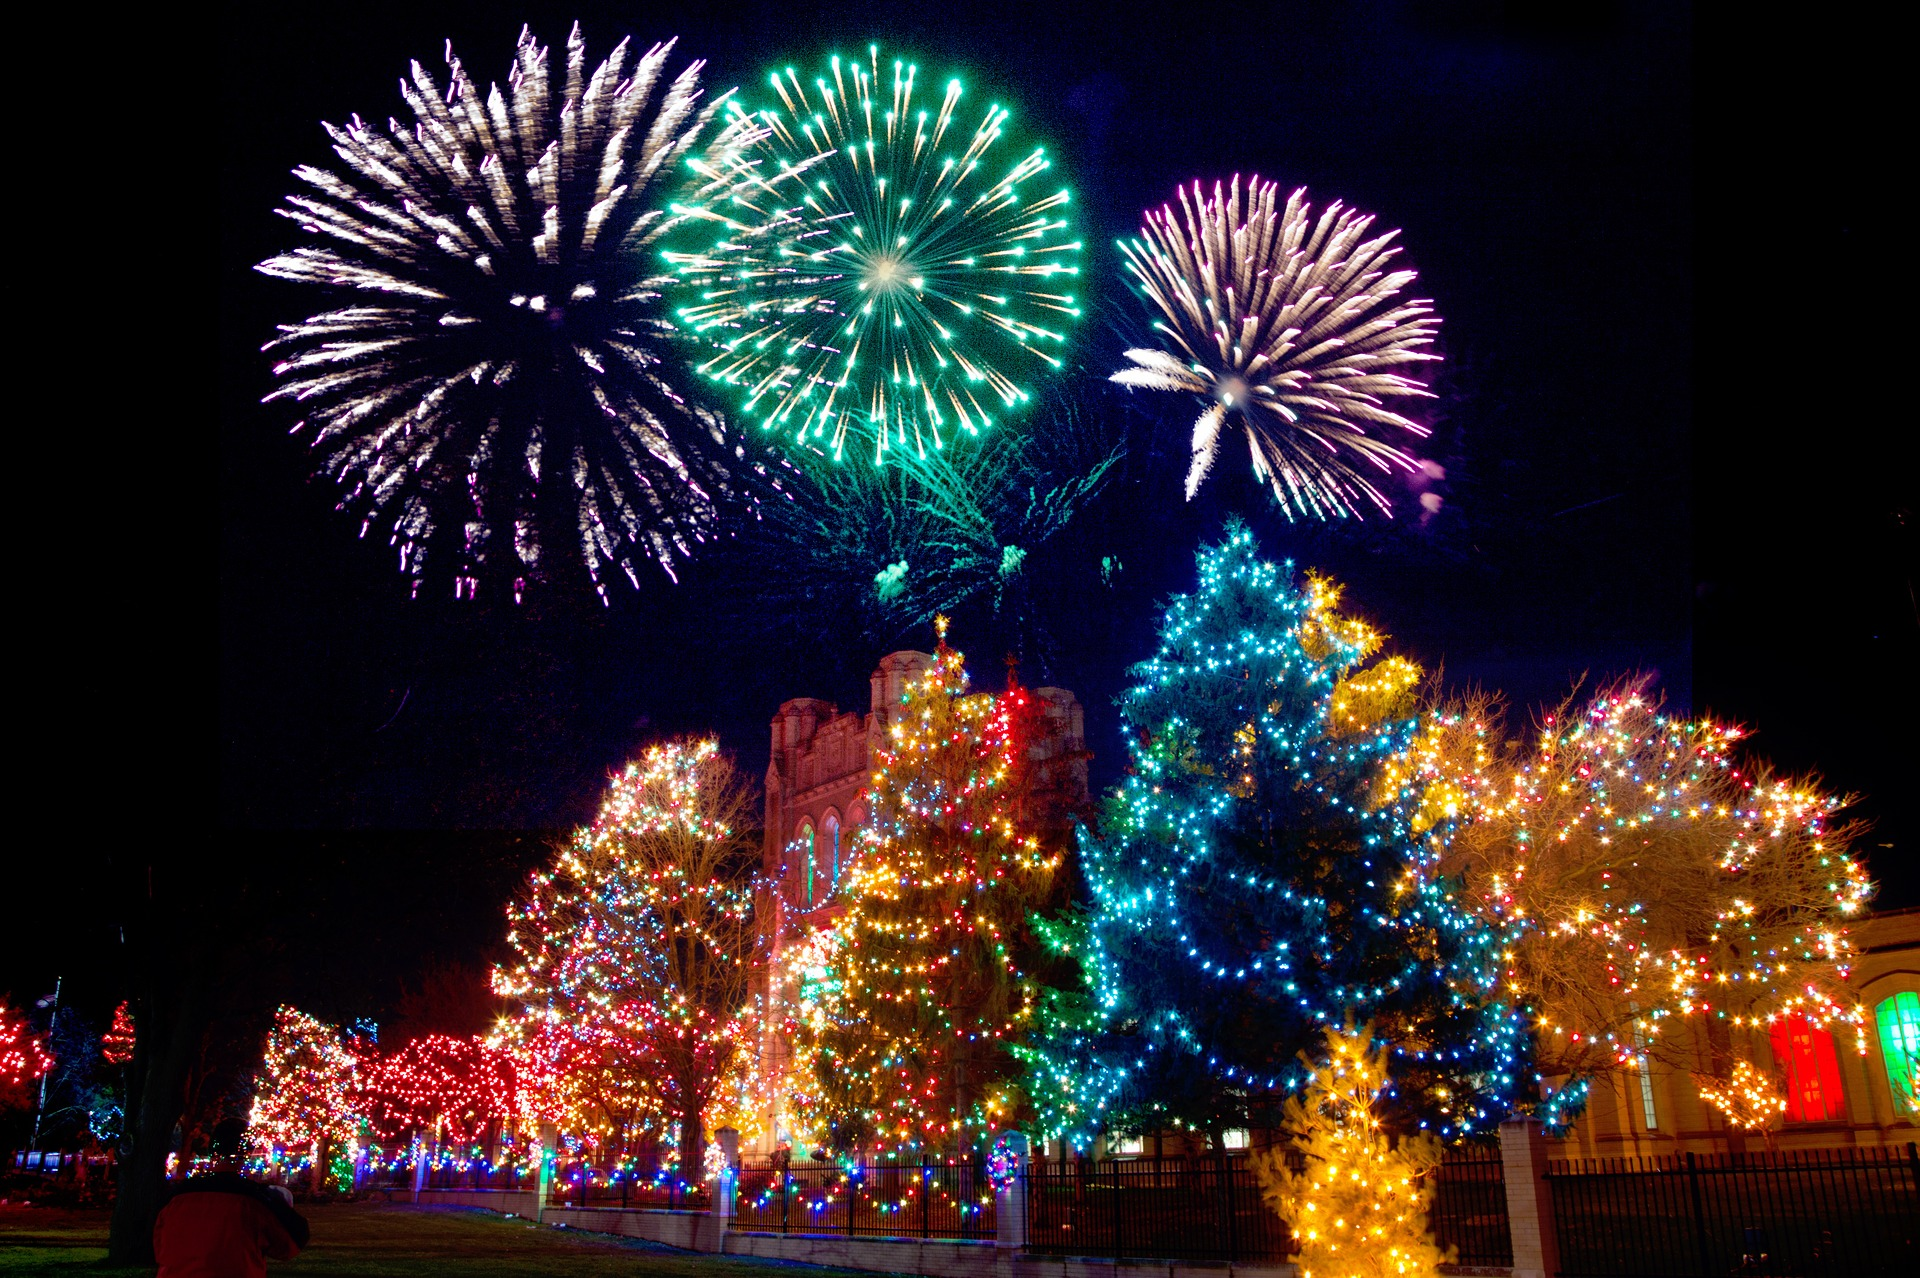 Xmas trees lit up & fireworks in sky